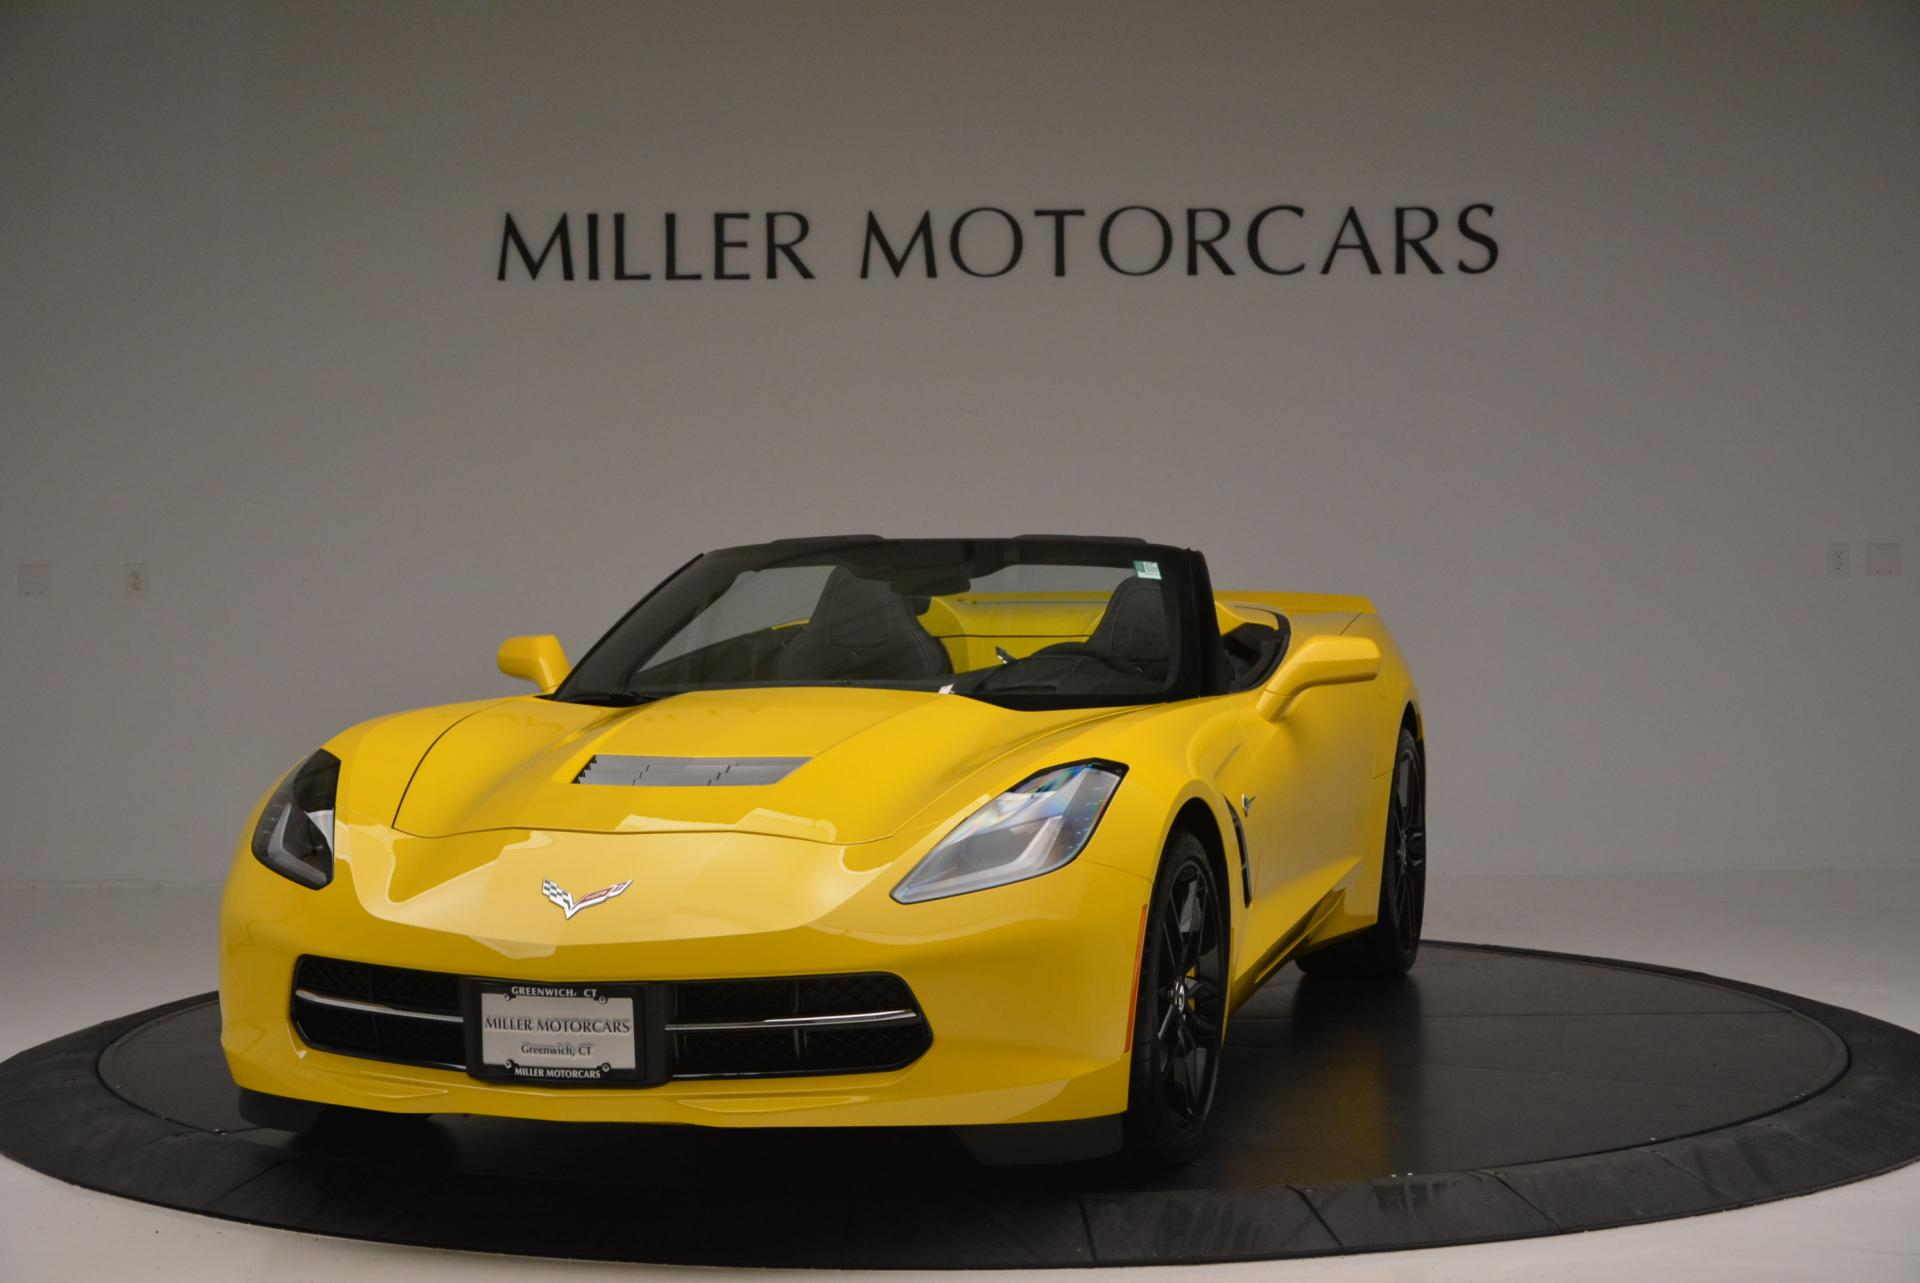 Used 2014 Chevrolet Corvette Stingray Z51 for sale Sold at Alfa Romeo of Westport in Westport CT 06880 1